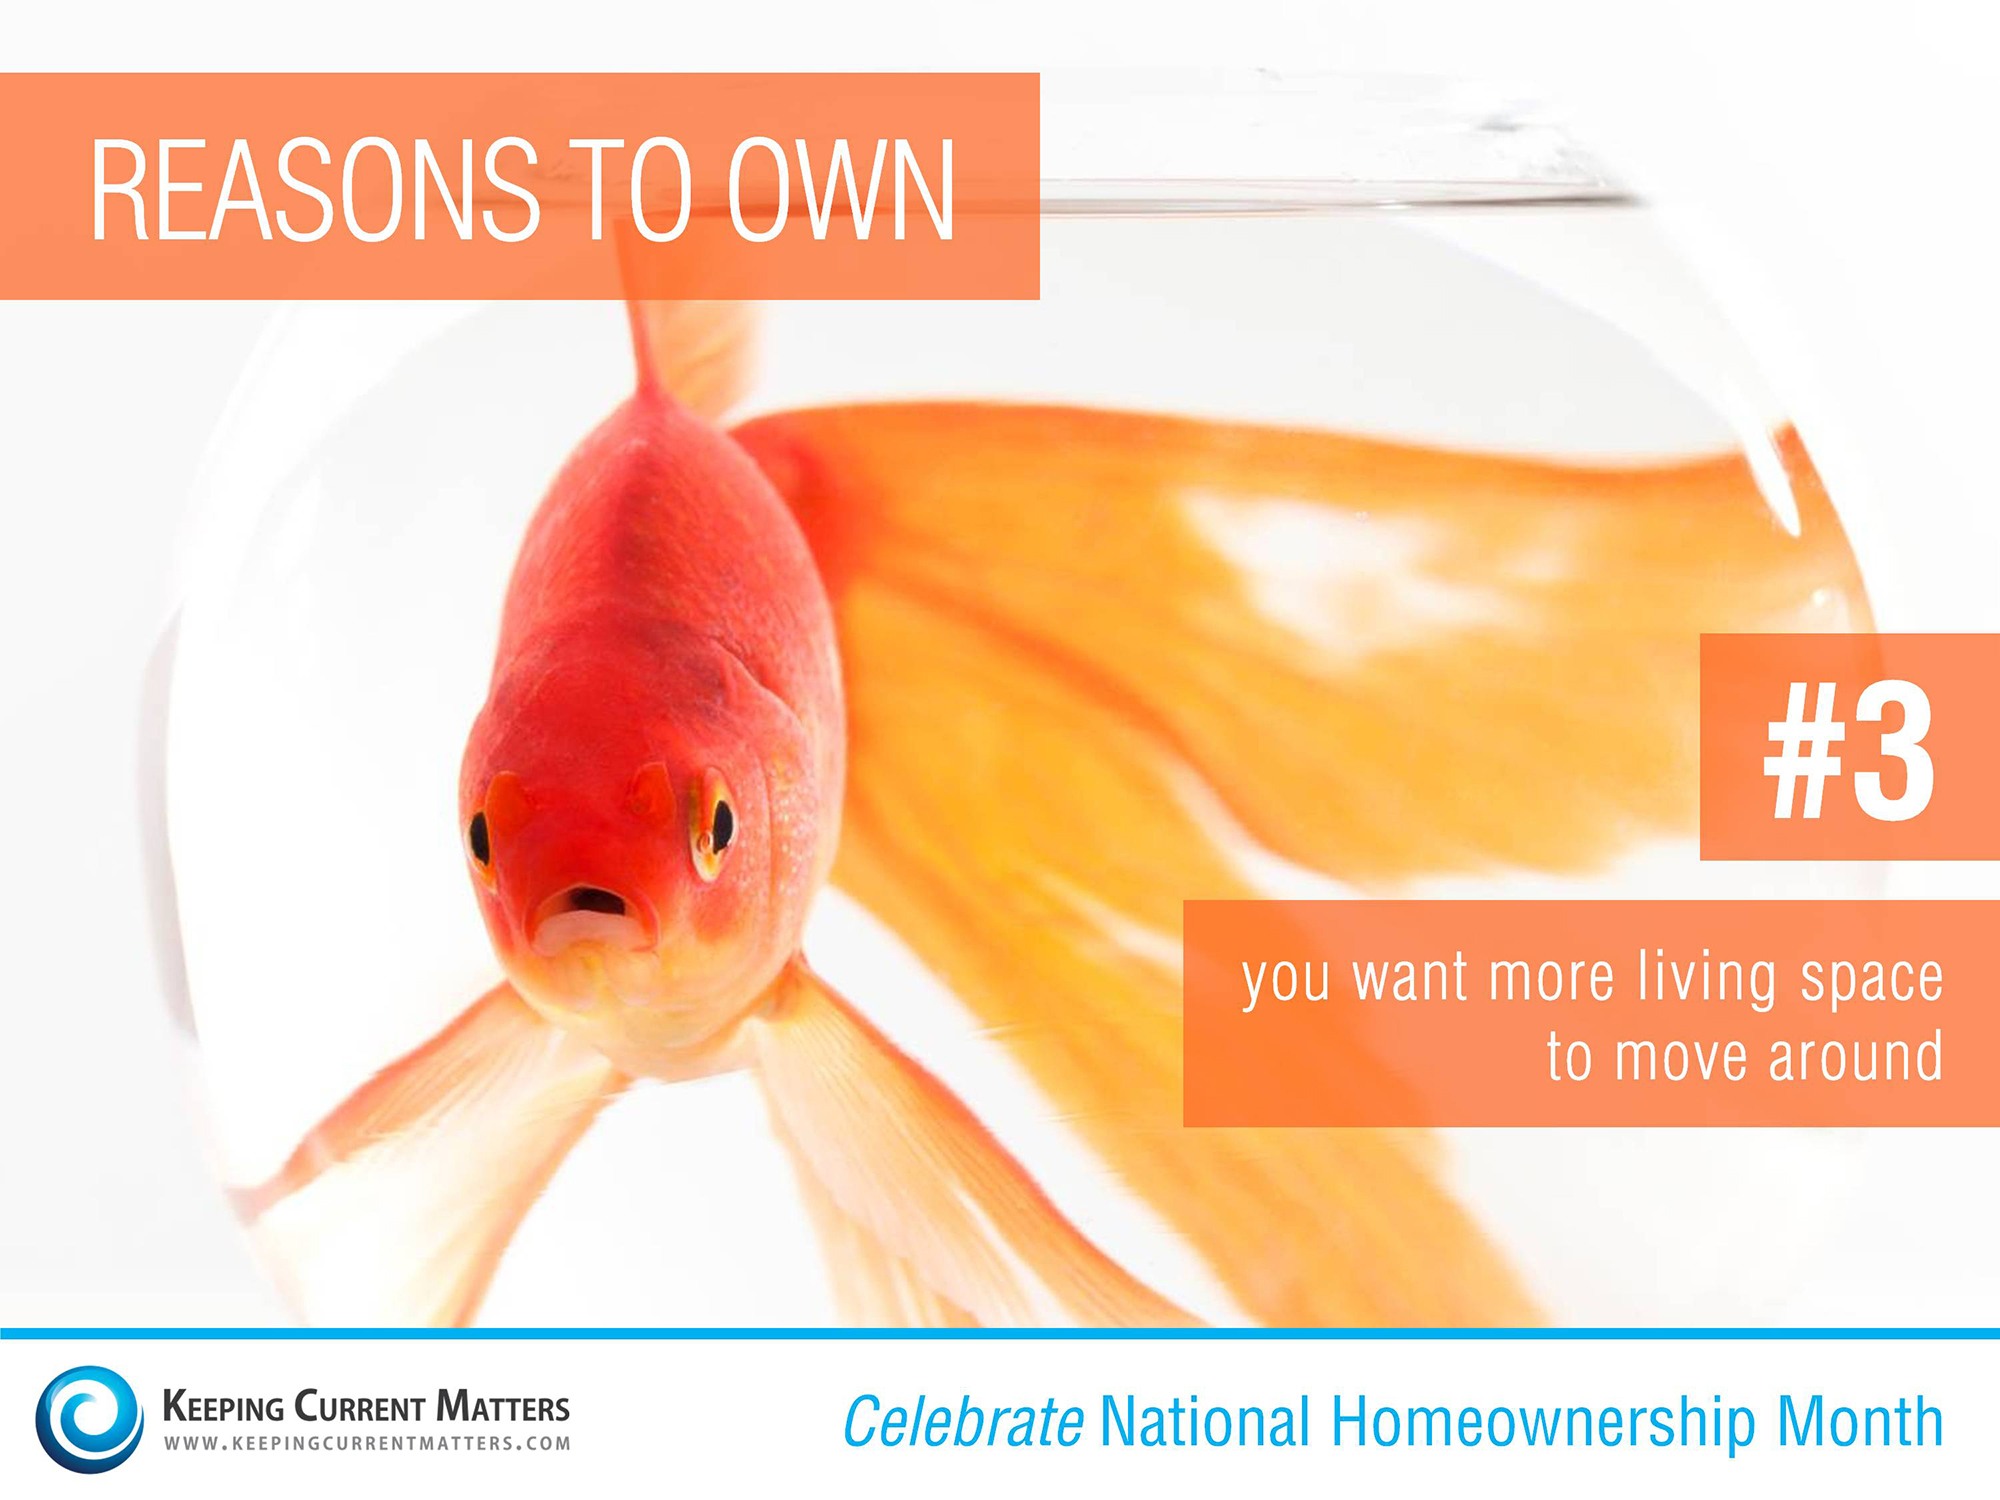 Reason #3 to Own | Keeping Current Matters